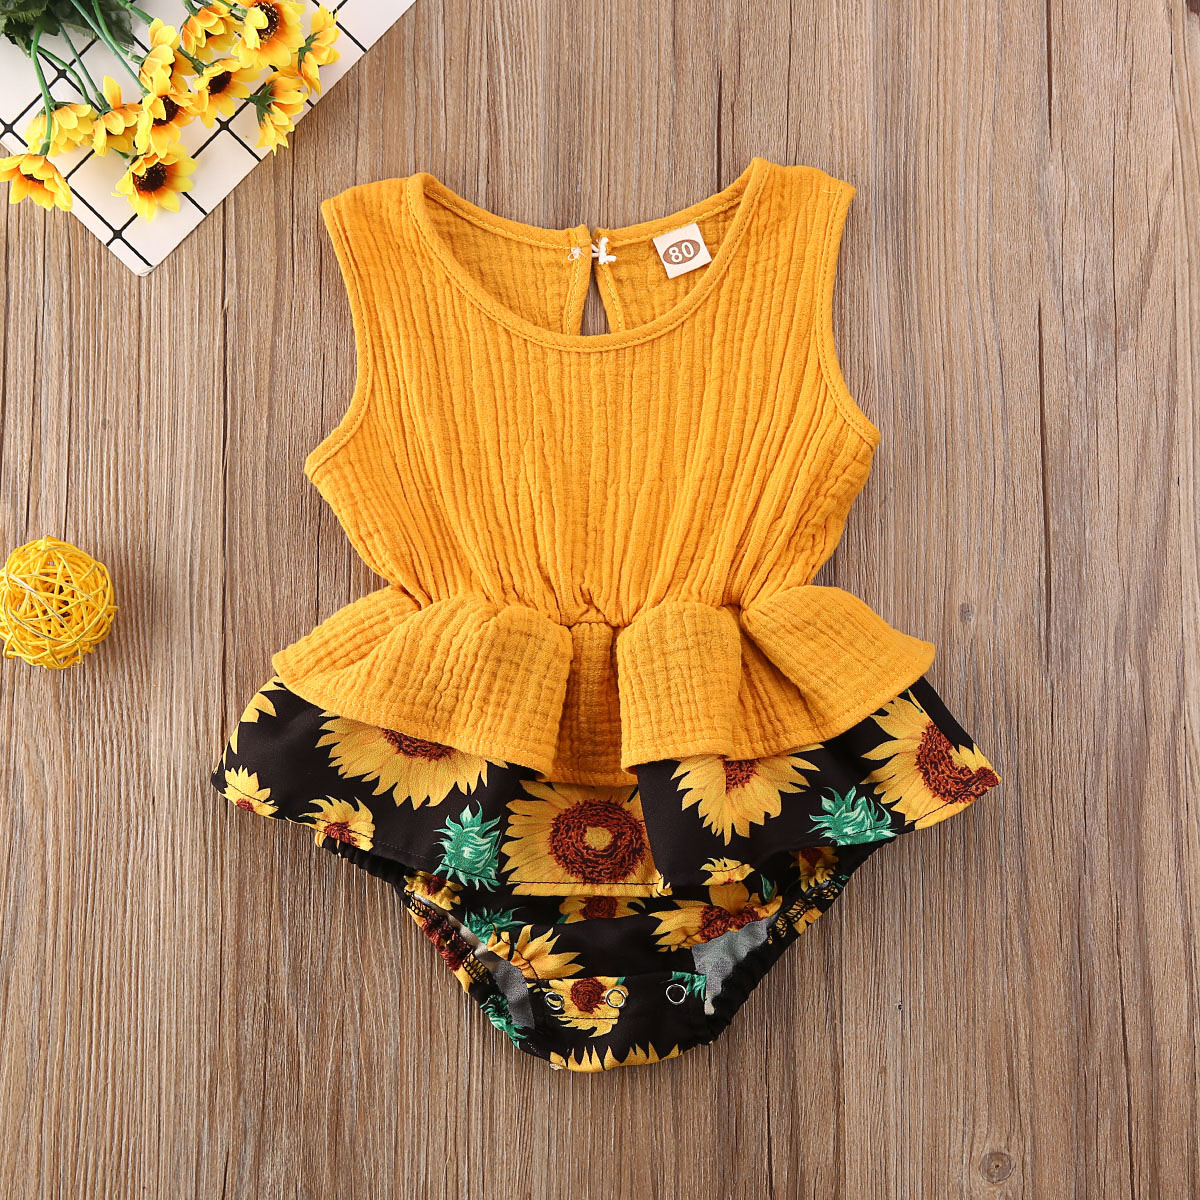 Pudcoco Newborn Baby Girl Clothes Flower Print Patchwork Sleeveless Romper Jumpsuit One-Piece Outfit Cotton Clothes